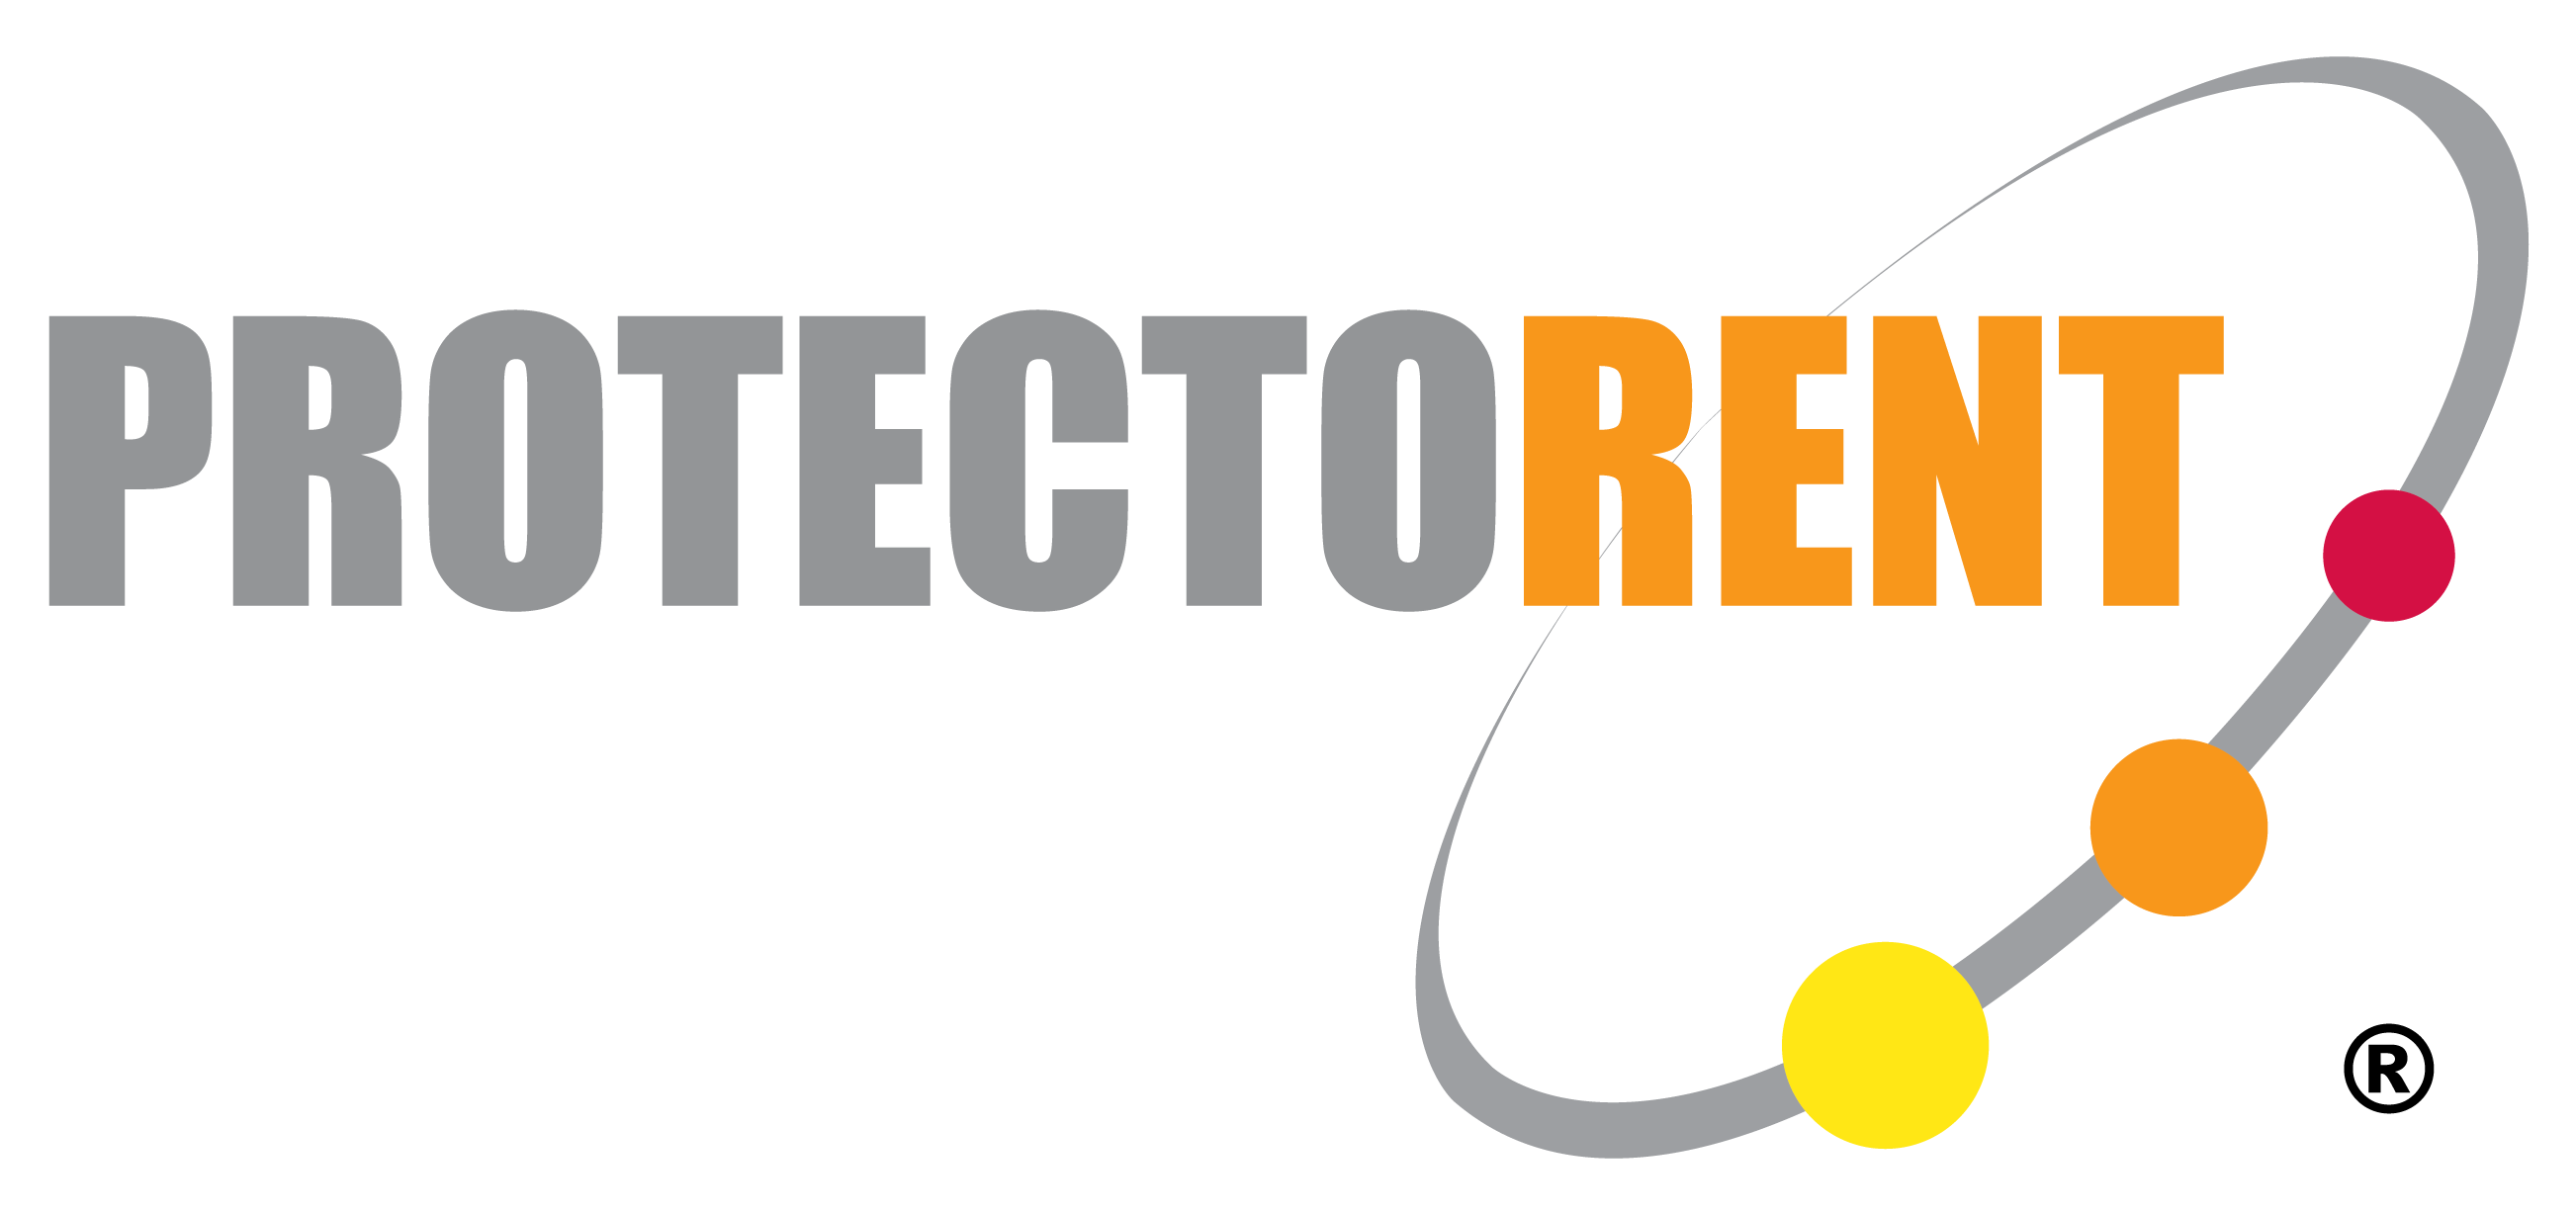 logo-protectorent.png